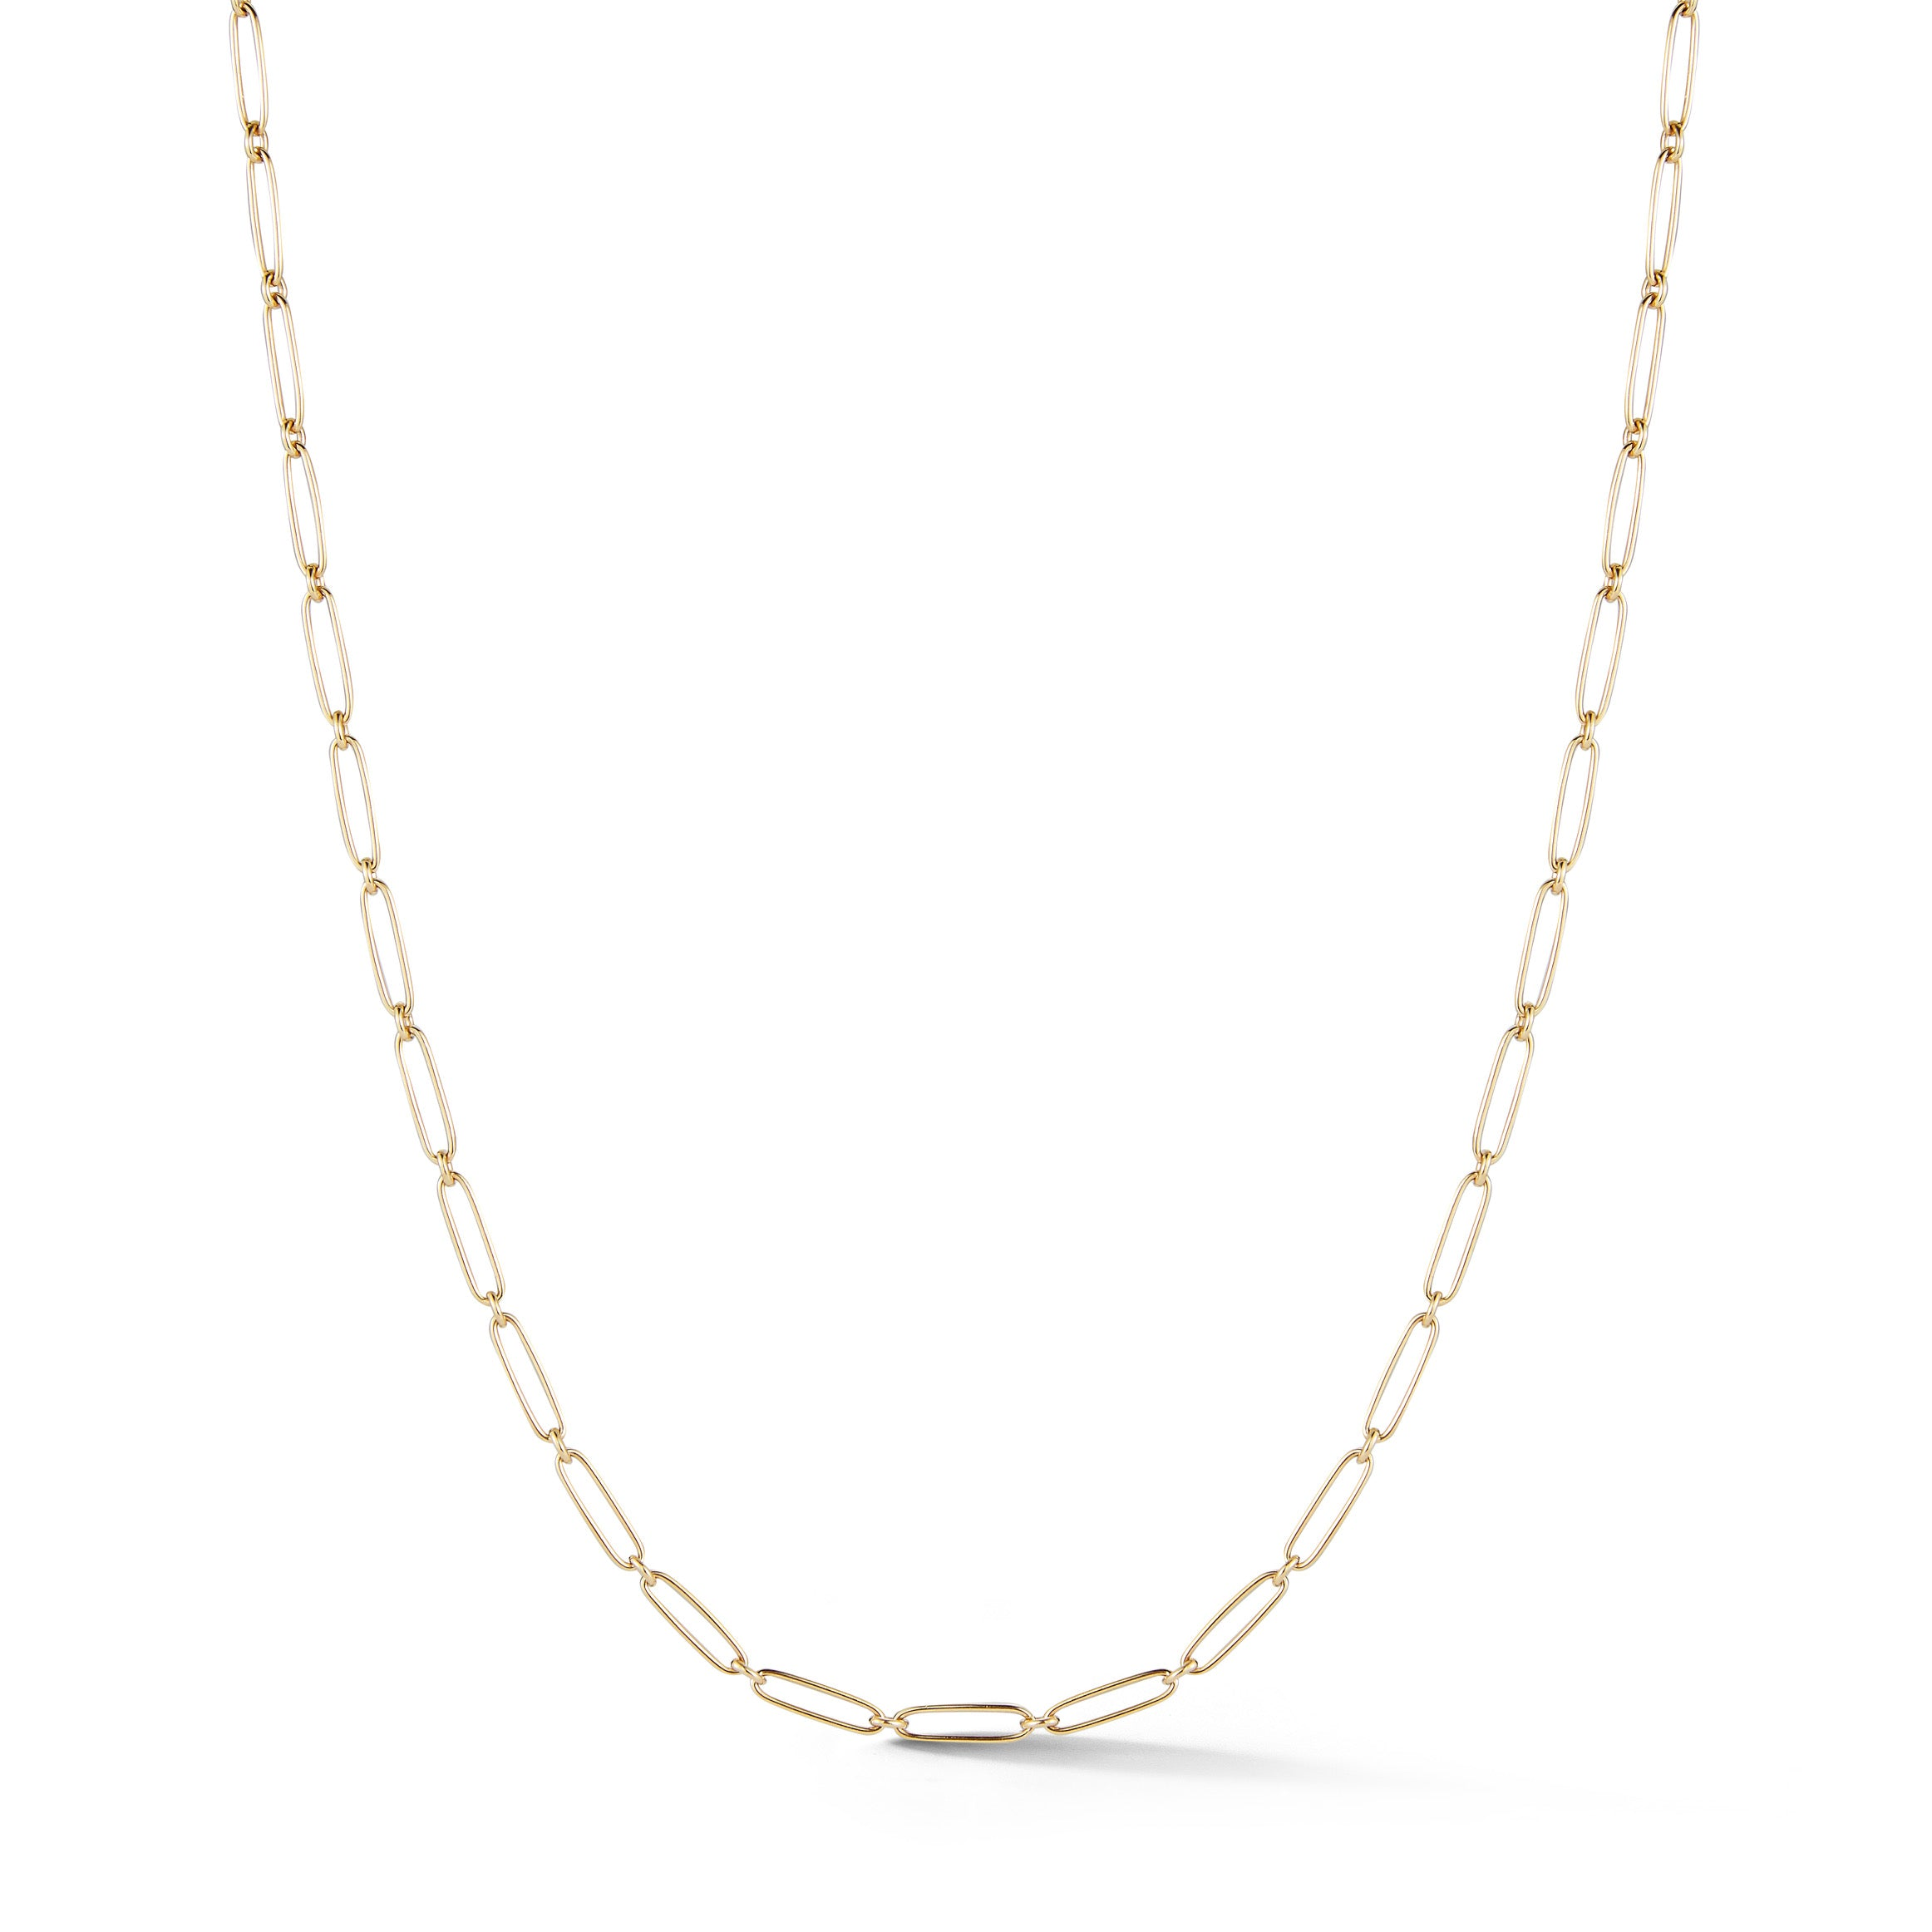 14K Gold Elongated Link Grover Chain